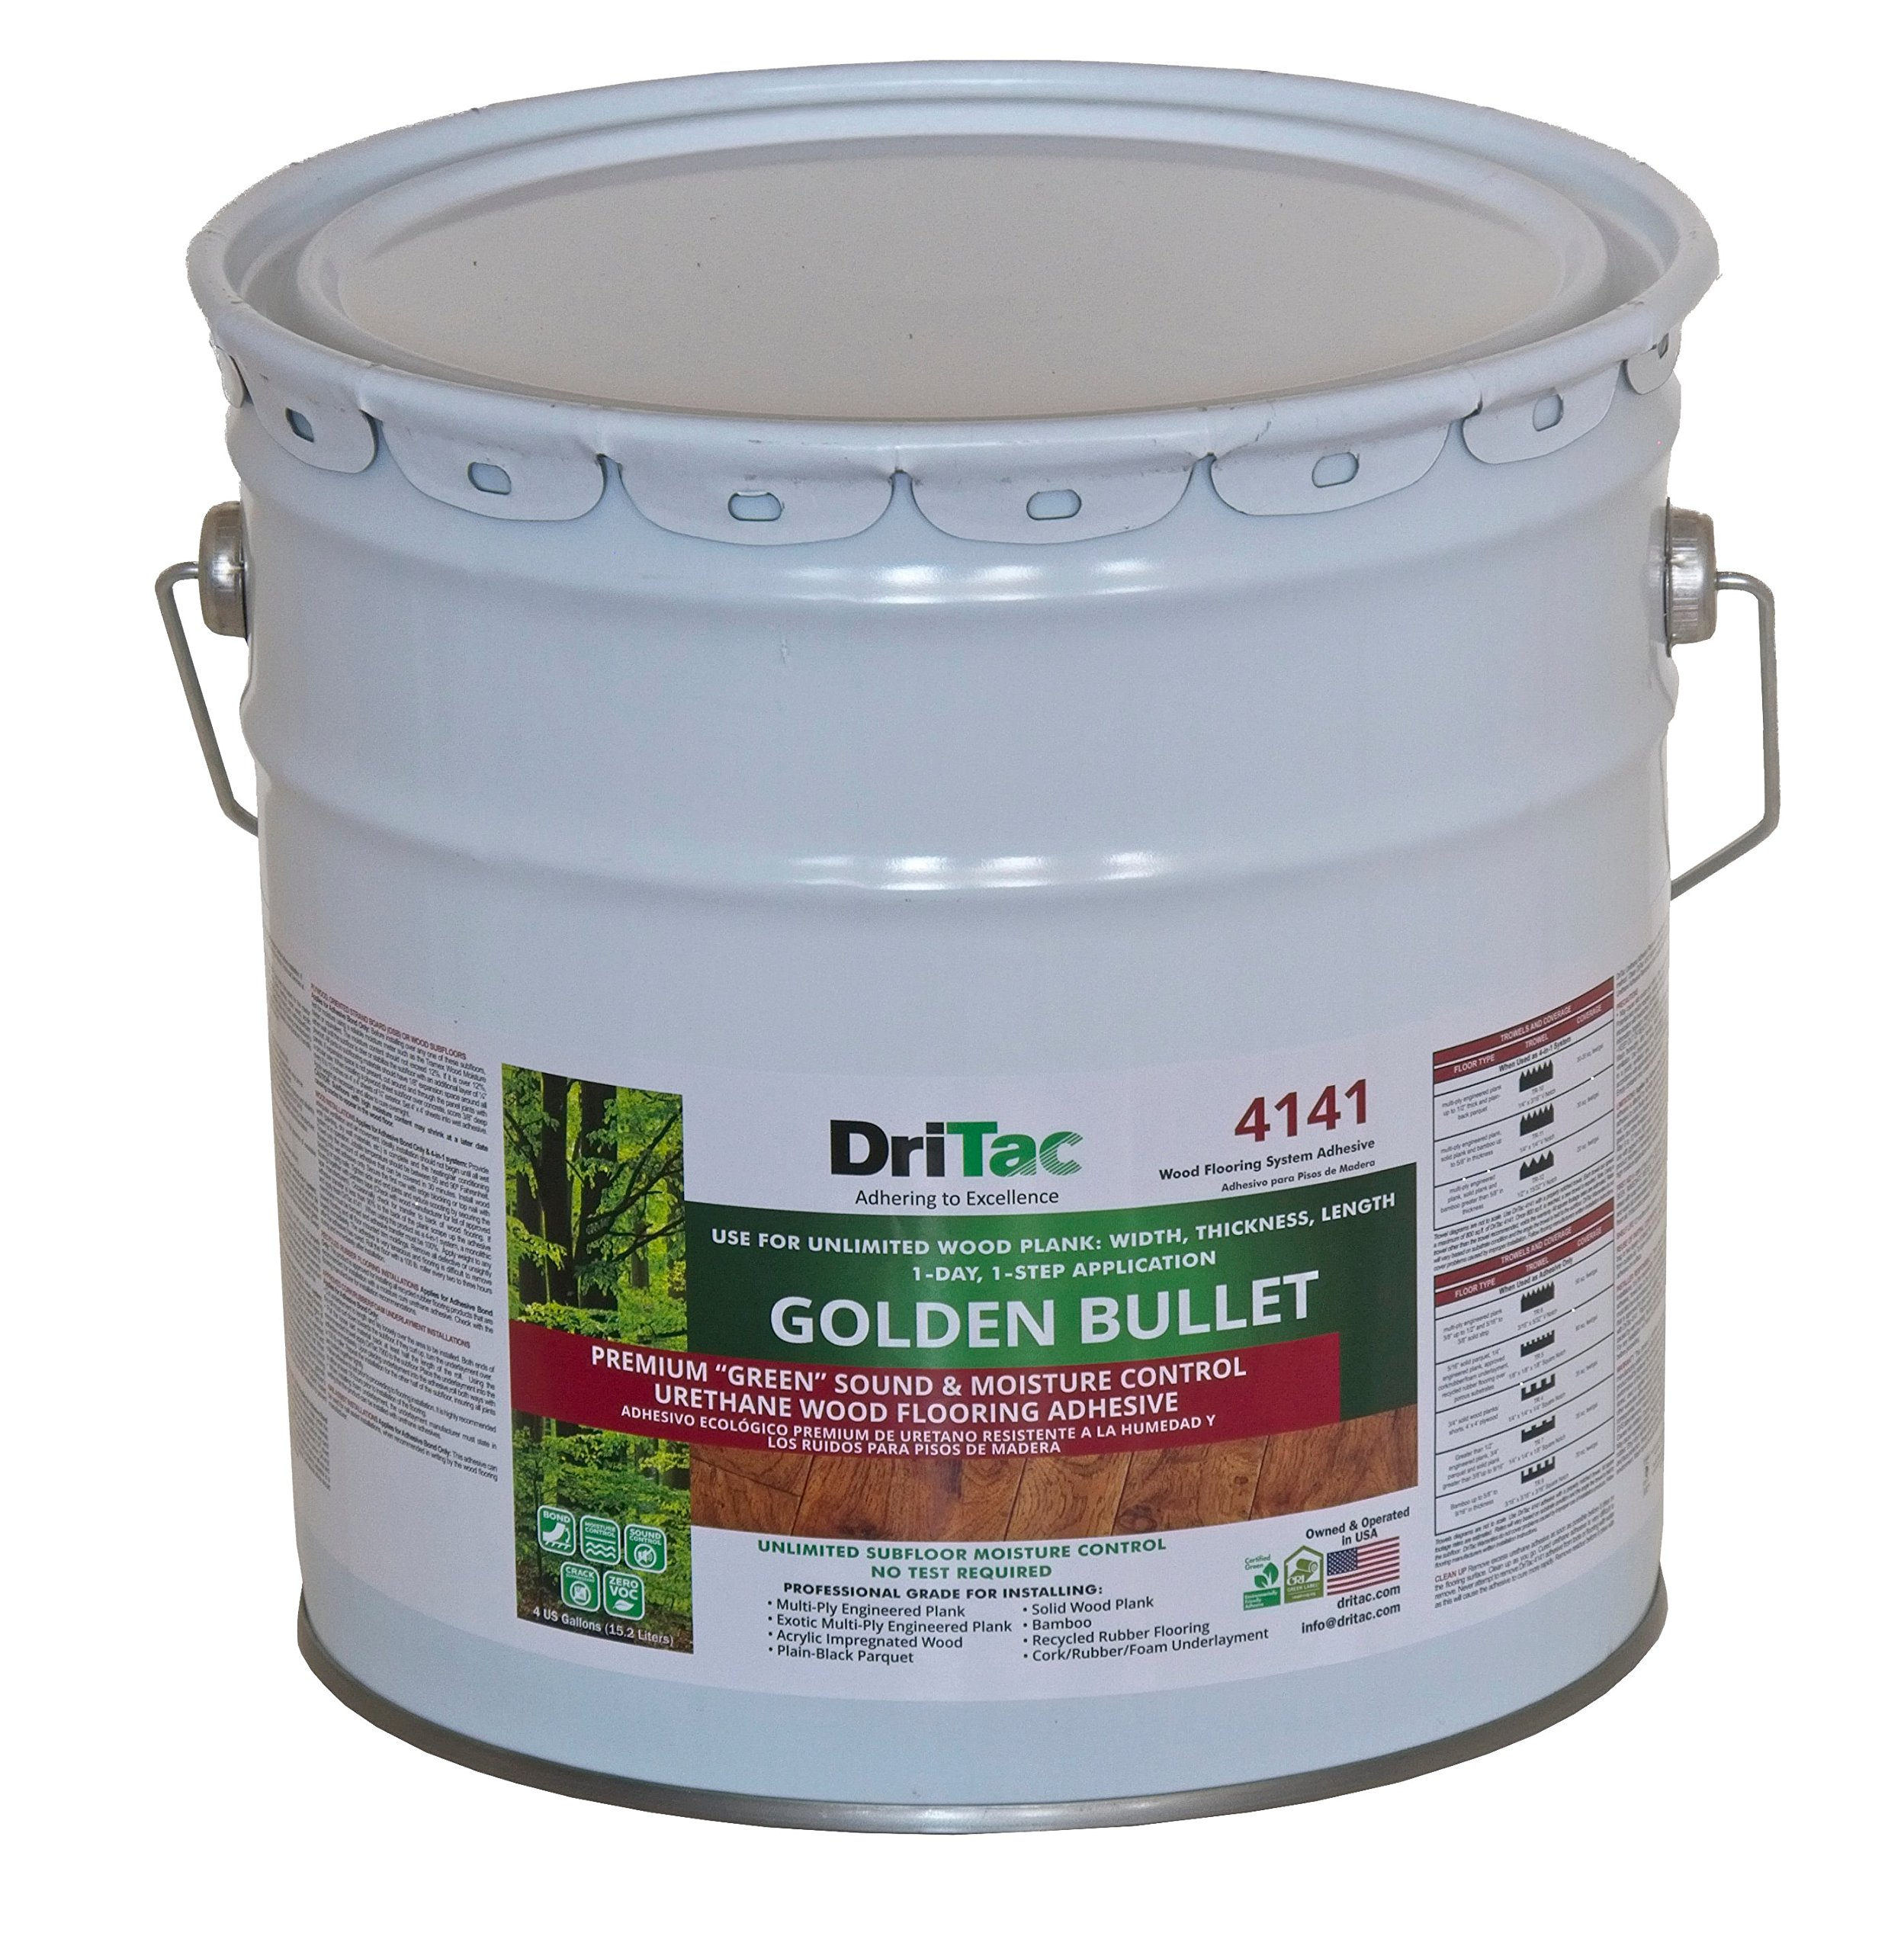 DriTac 4141 Golden Bullet Mositire Barrier Adhesive by DriTac (Image #1)